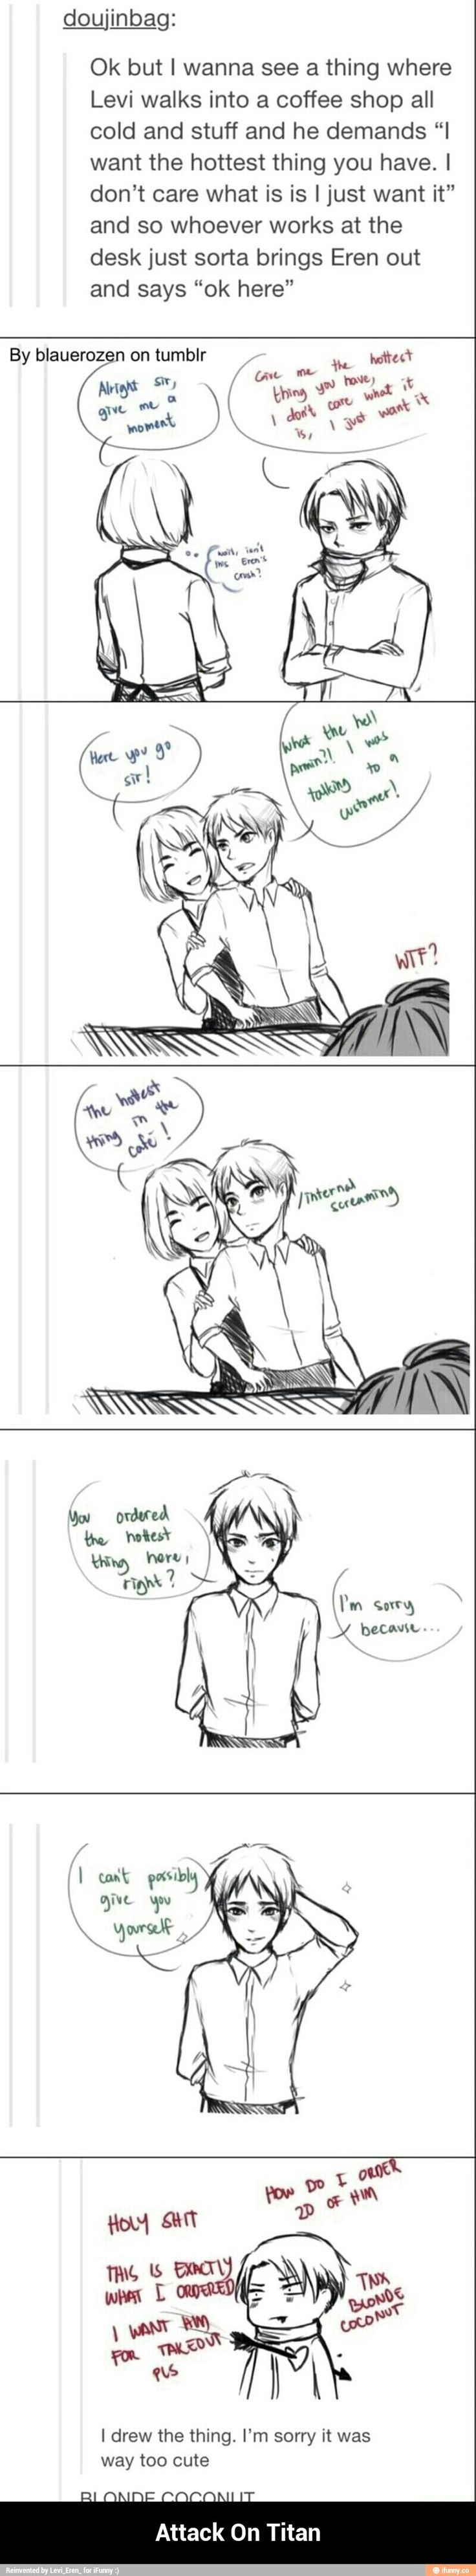 Oh. My. God. tumblr drawing, levi orders the hottest thing at a cafe and armin brings out eren